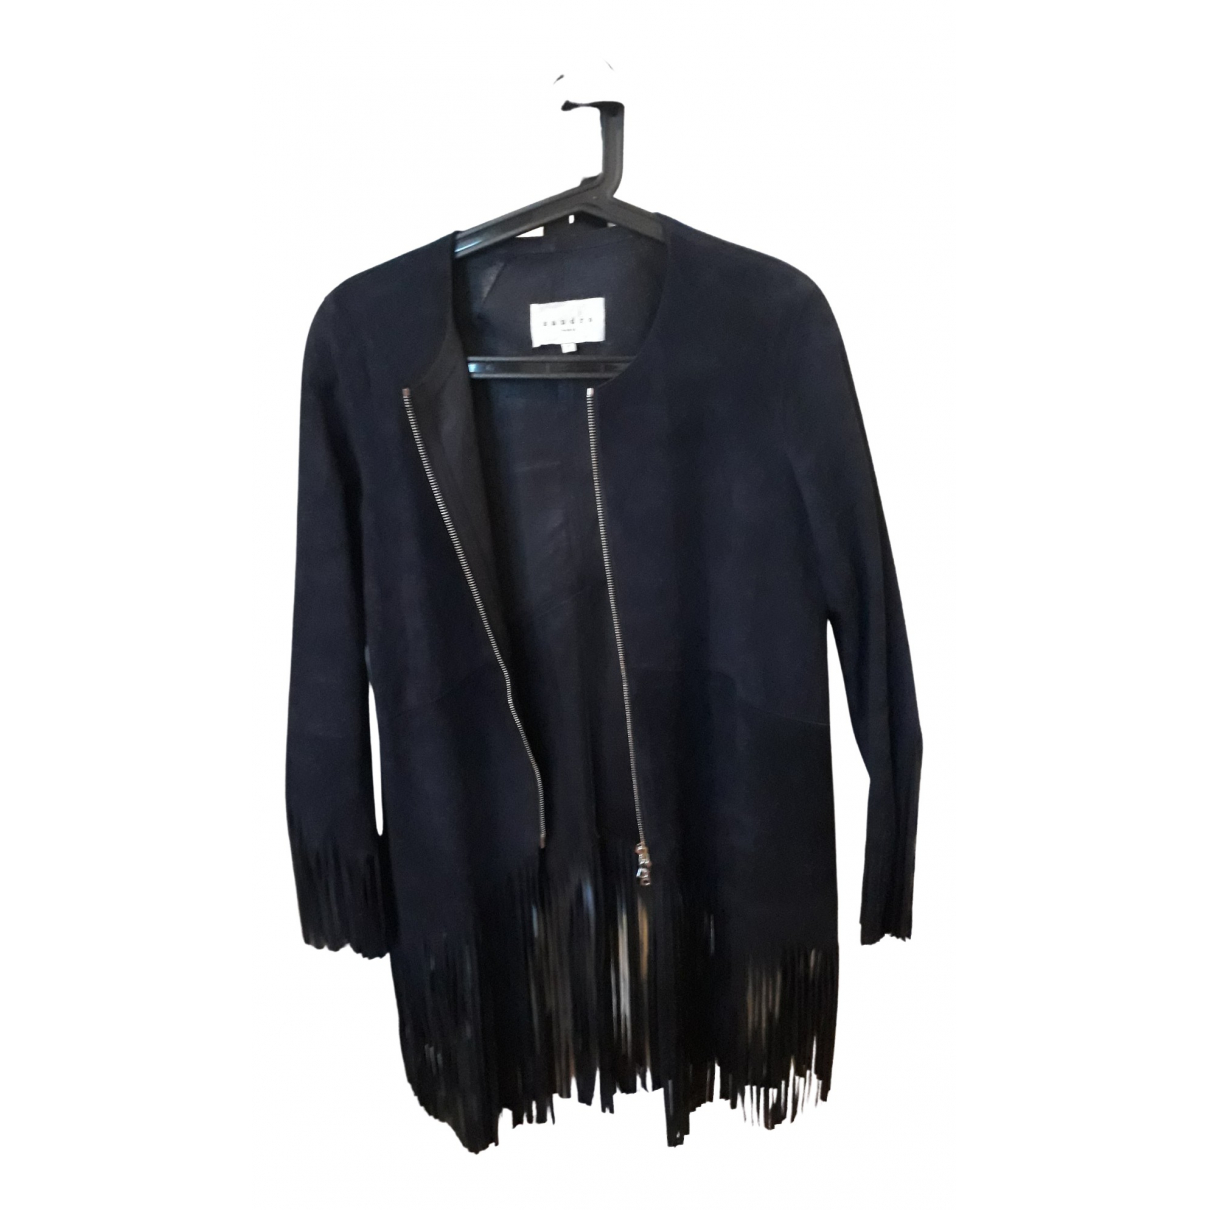 Sandro \N Navy Suede jacket for Women 1 US